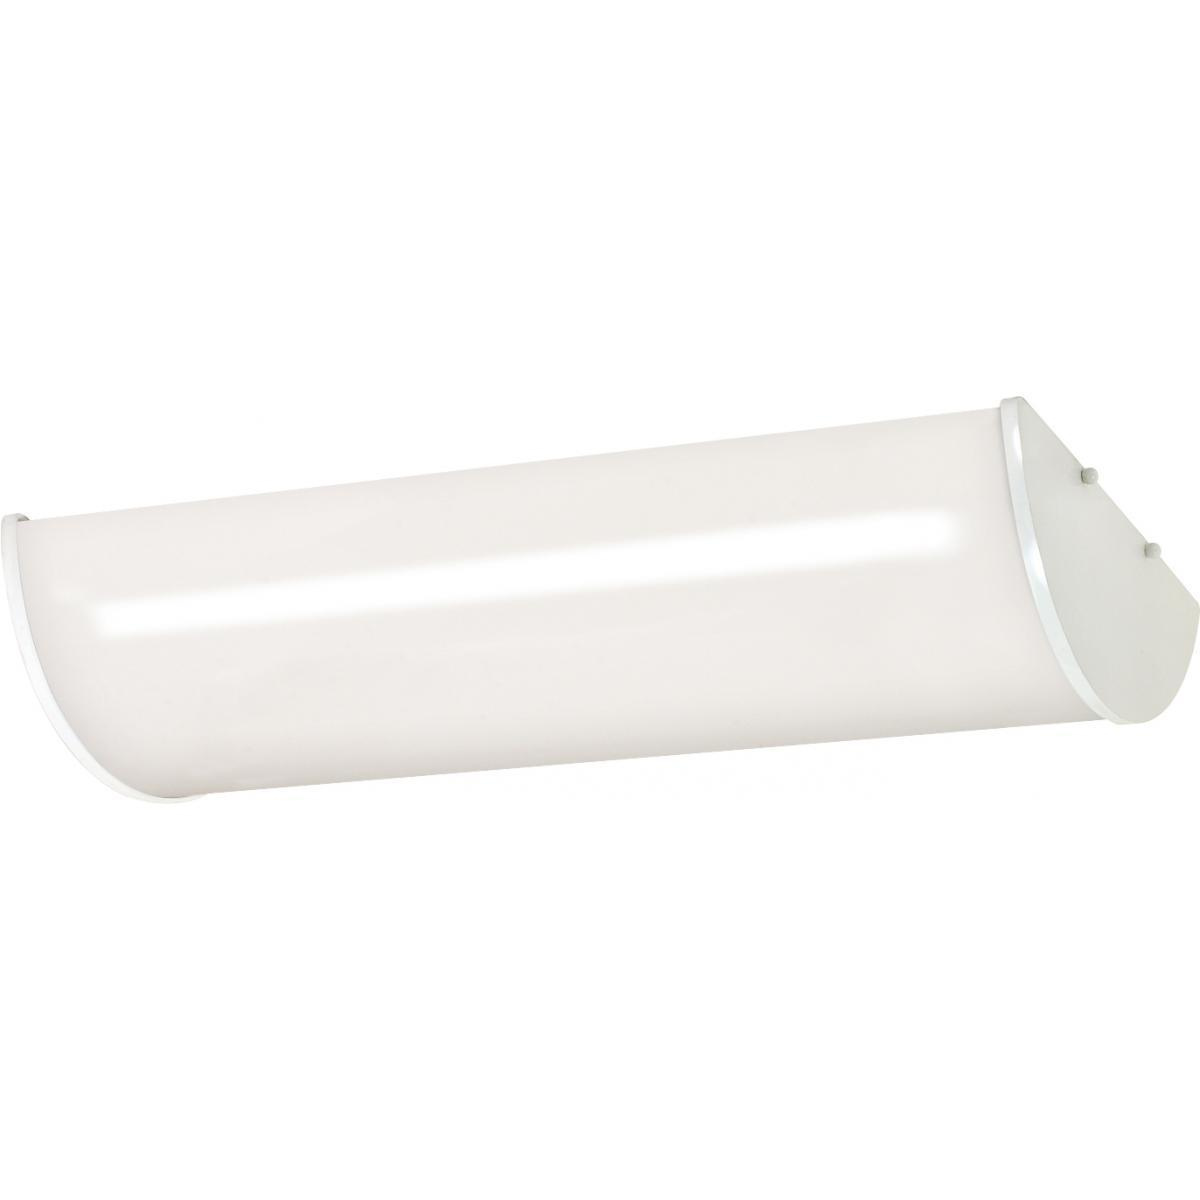 "NUVO Crispo 25"" 3 Light Linear Ceiling (White) (Glass)"